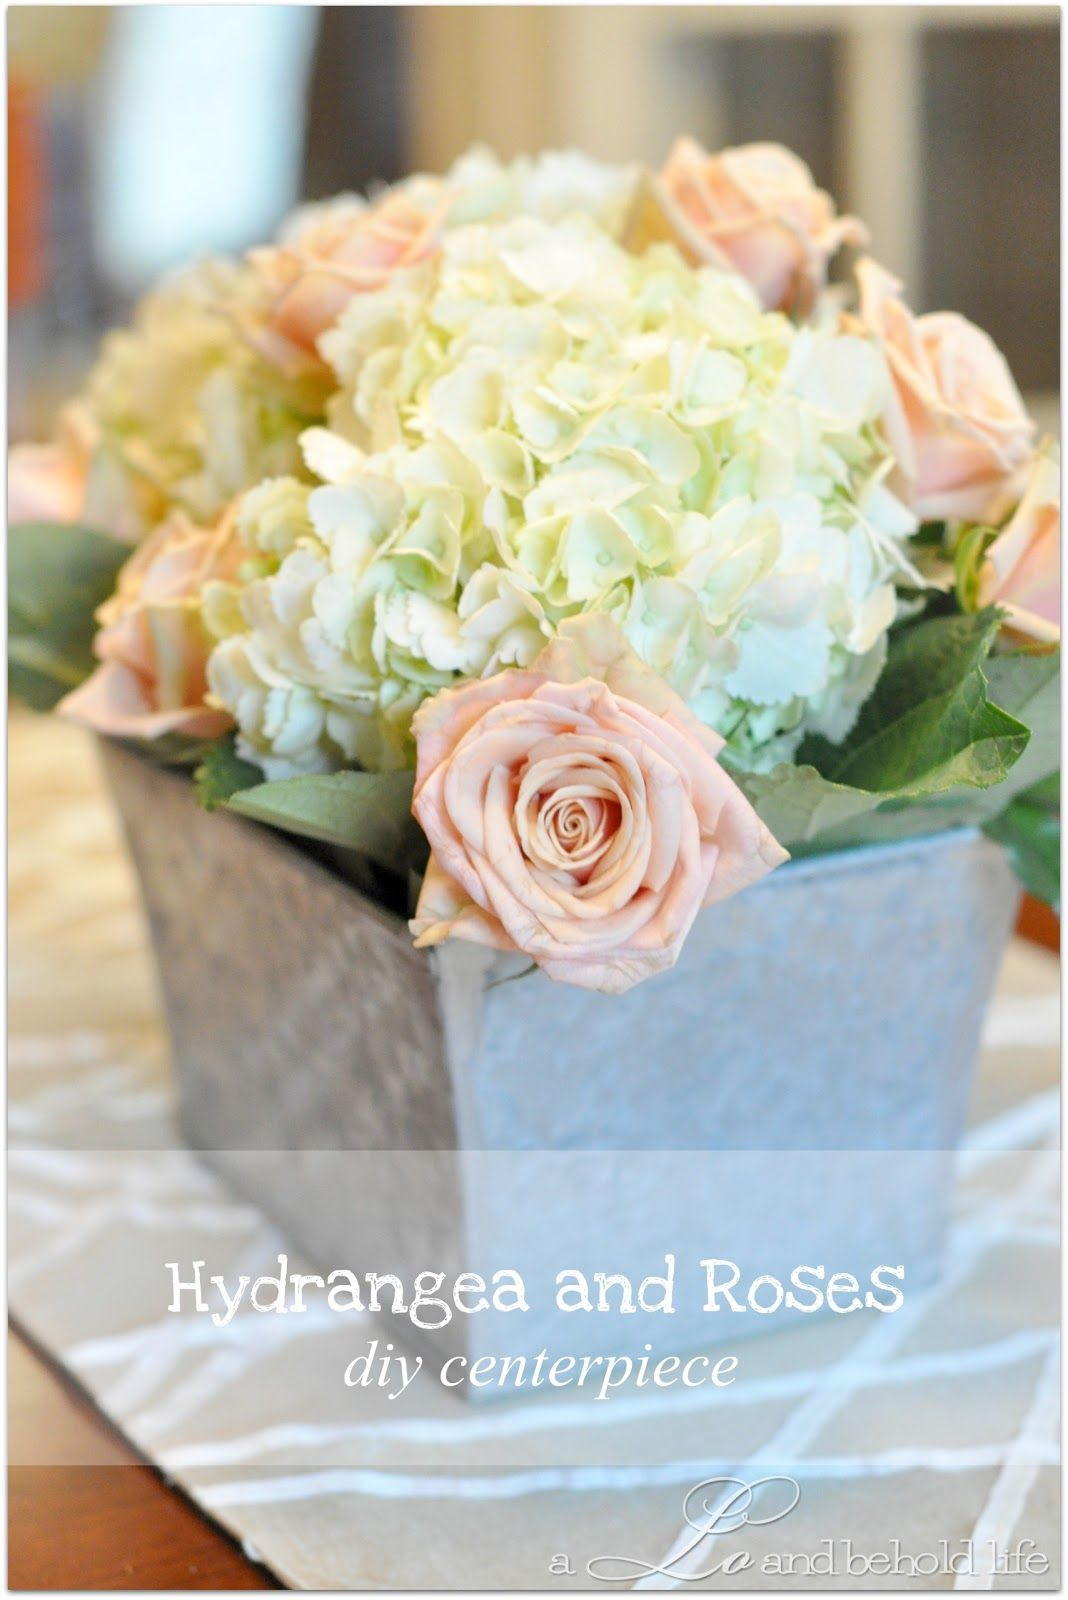 Diy flower decorations wedding  Thereus really nothing like fresh flowers around the house to